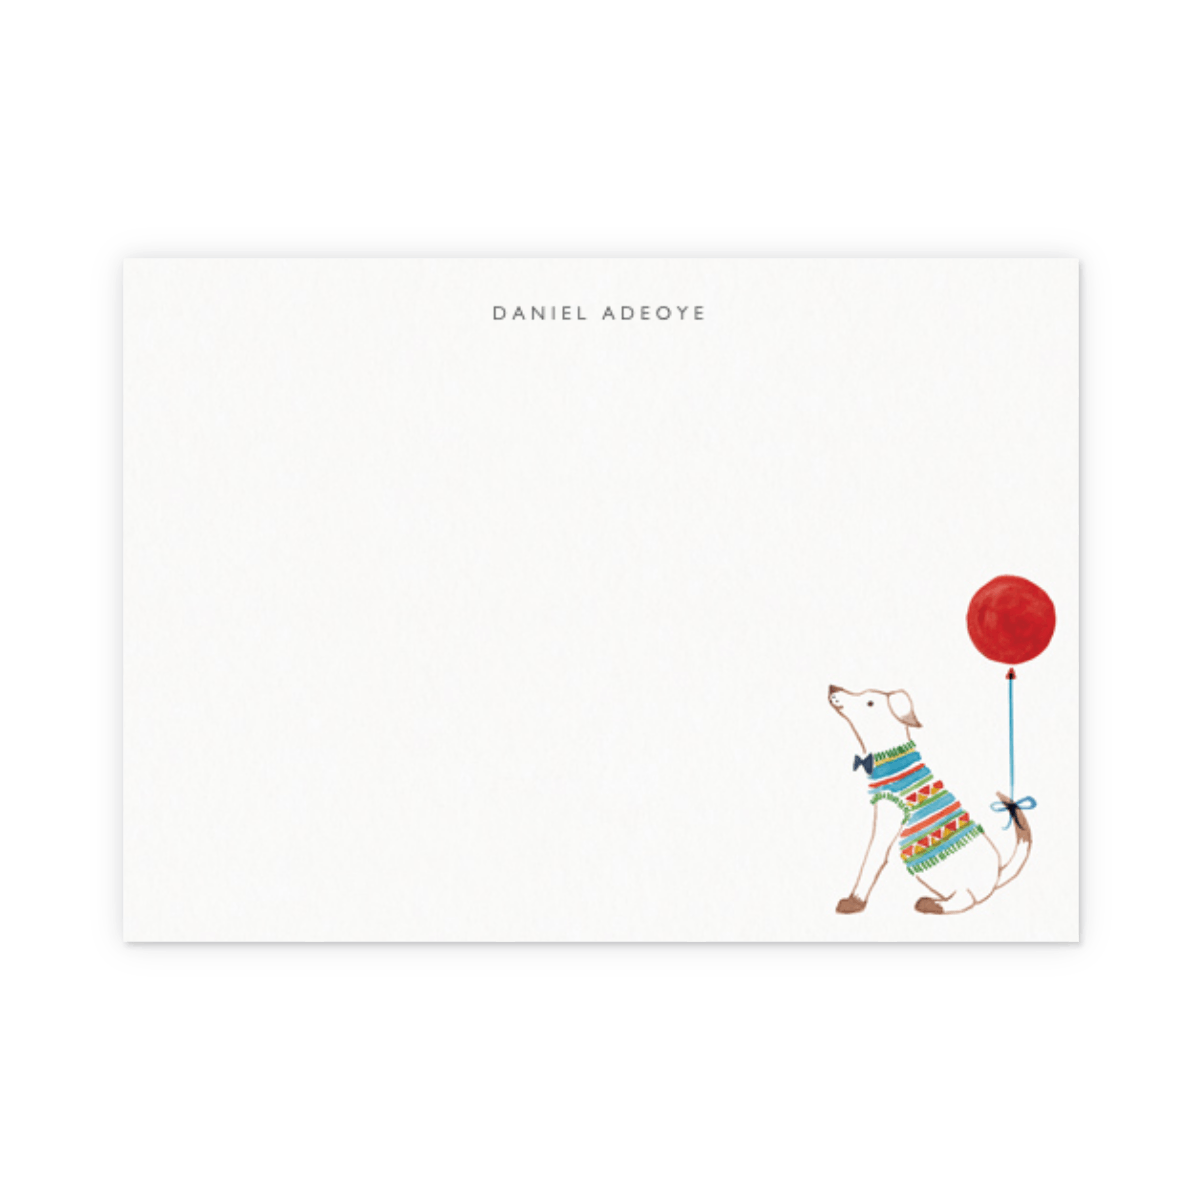 Https%3a%2f%2fwww.papier.com%2fproduct image%2f12381%2f10%2fa dog and his balloon 3119 front 1551209589.png?ixlib=rb 1.1